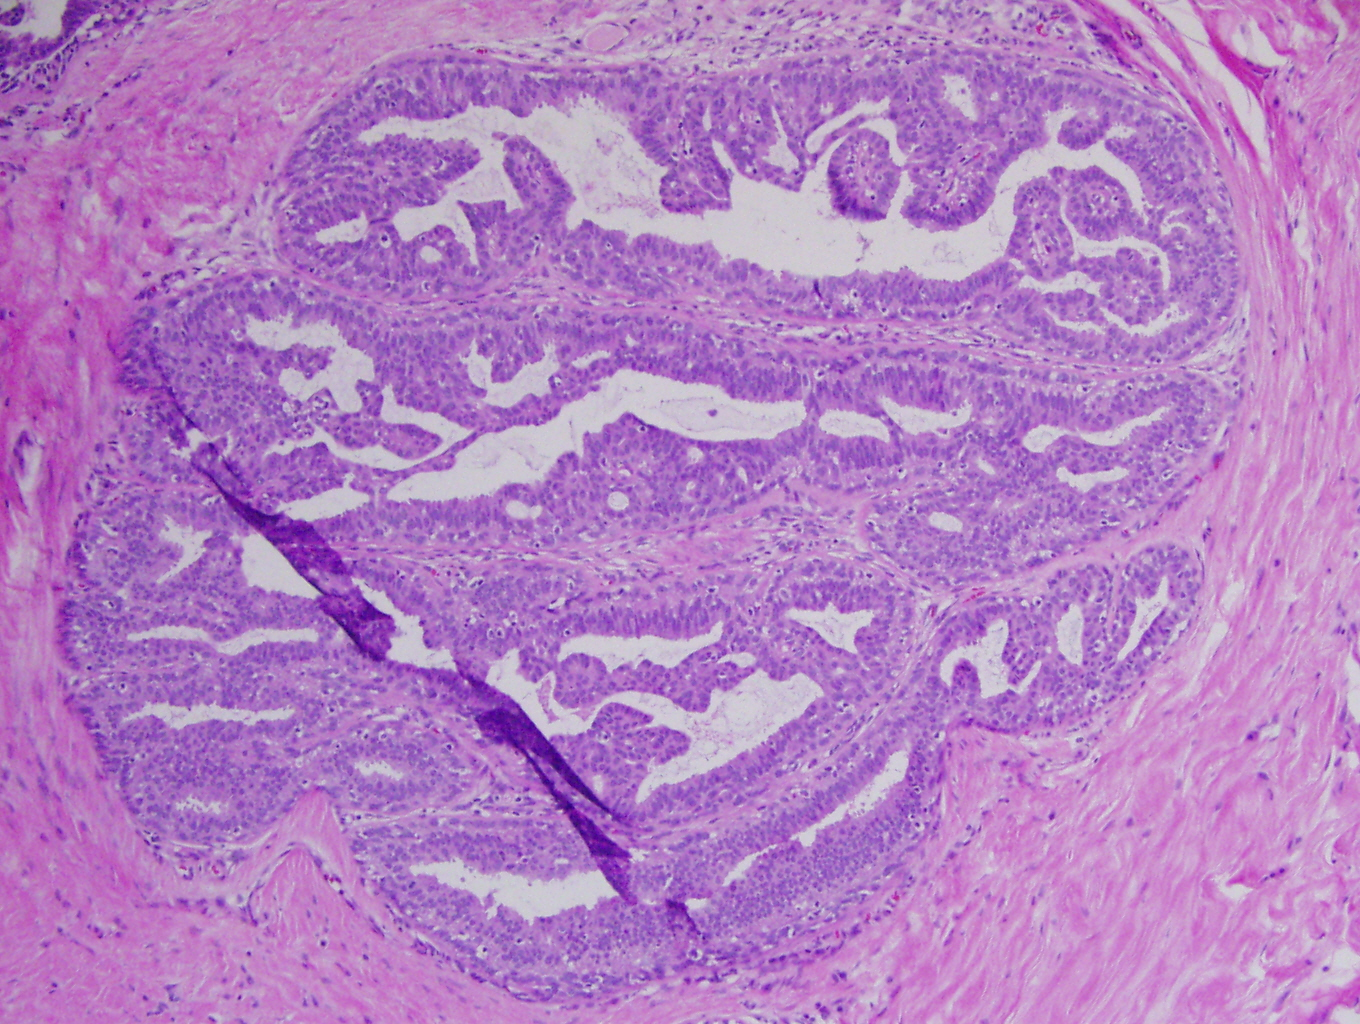 intraductal papillomatosis histology